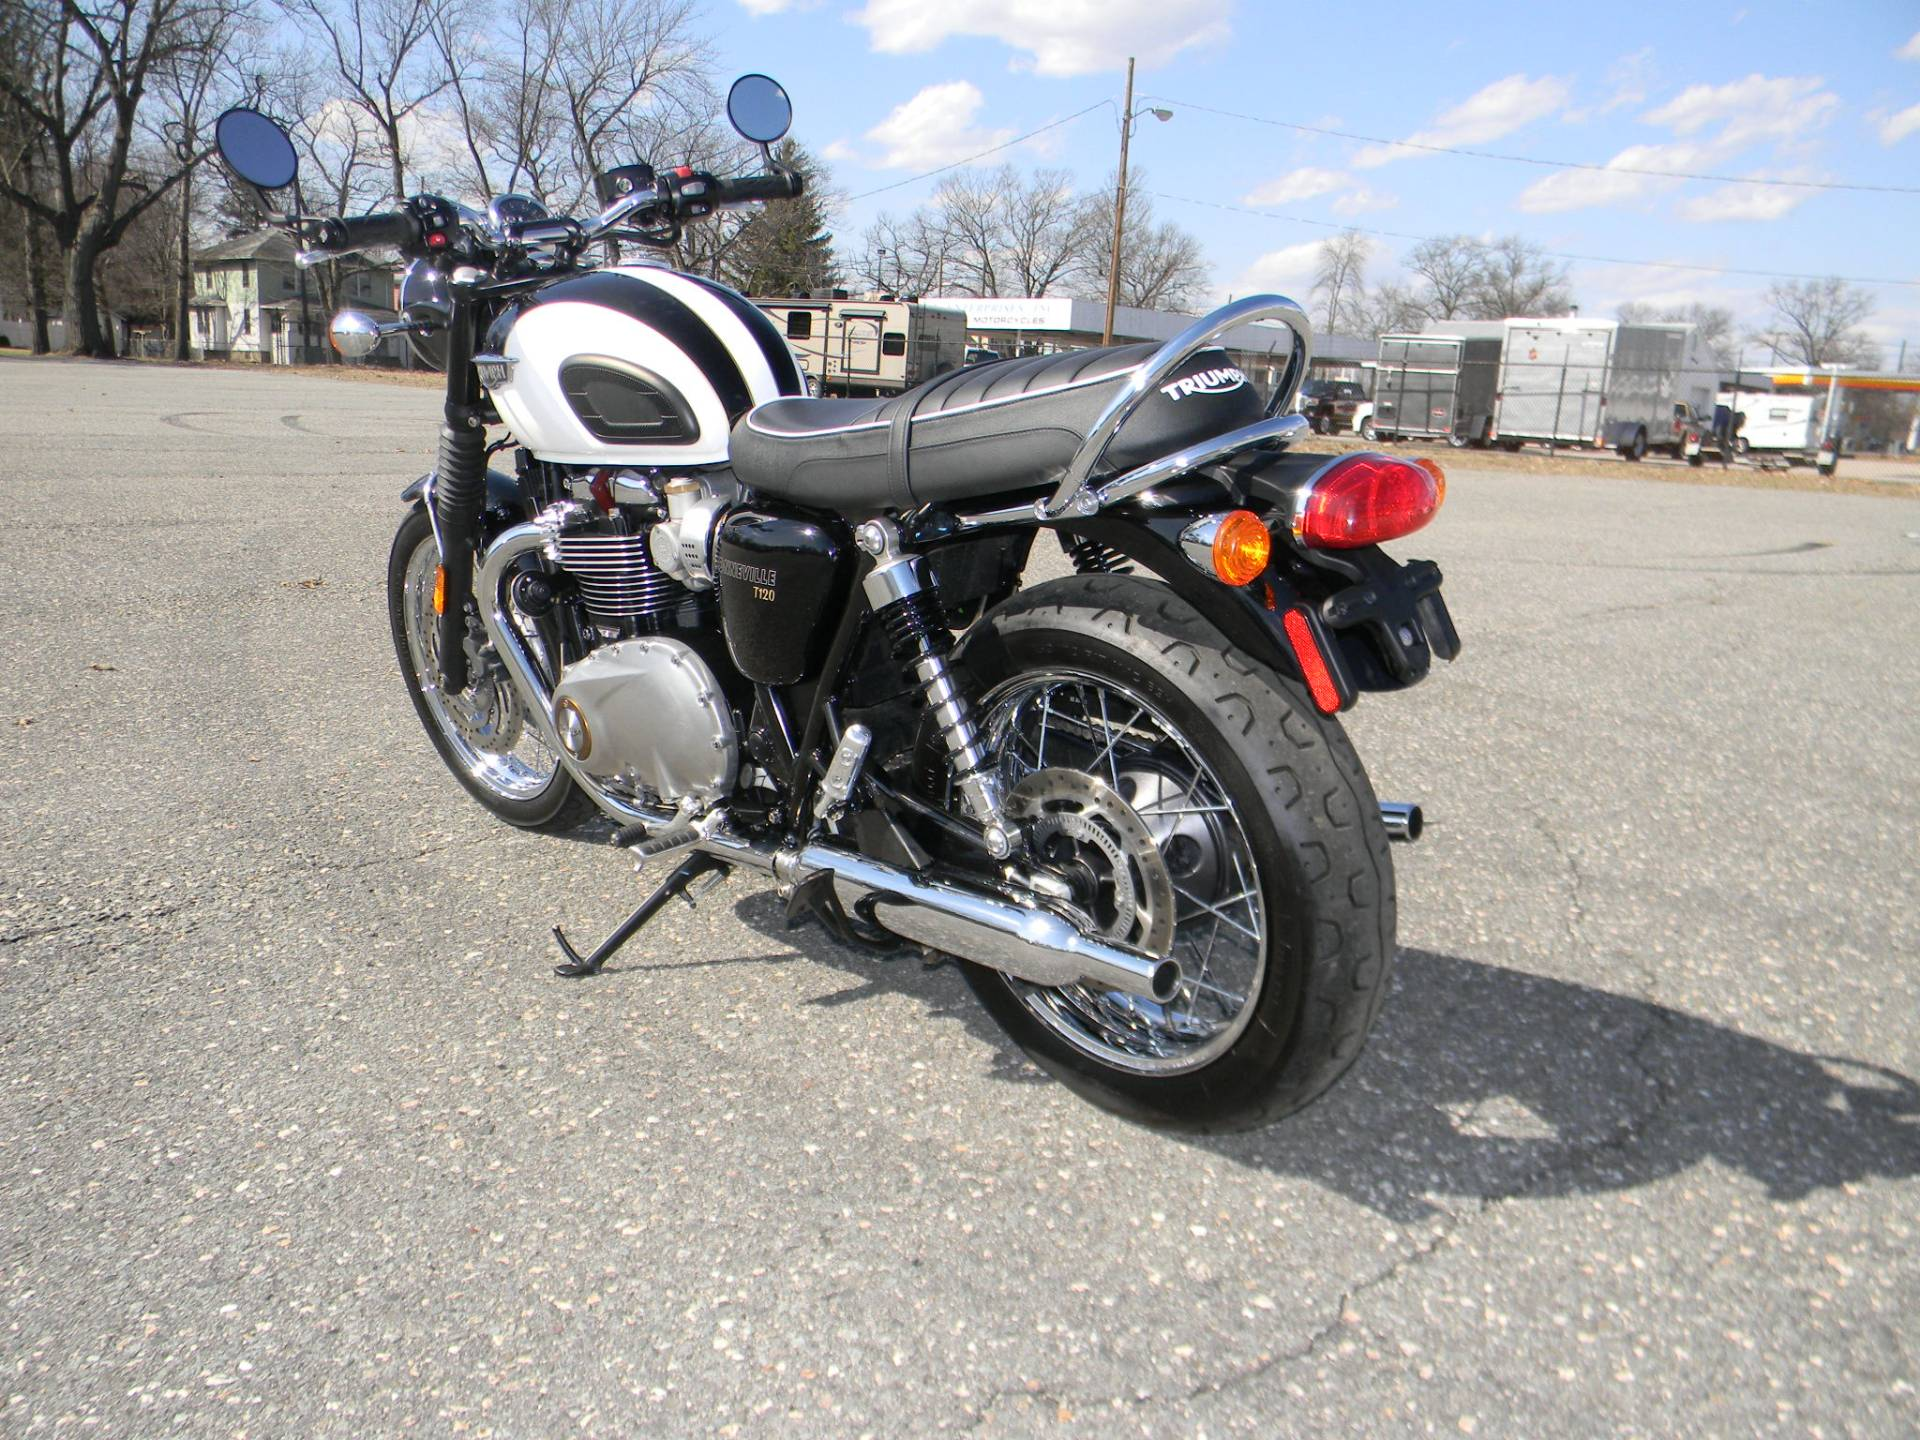 2017 Triumph Bonneville T120 in Springfield, Massachusetts